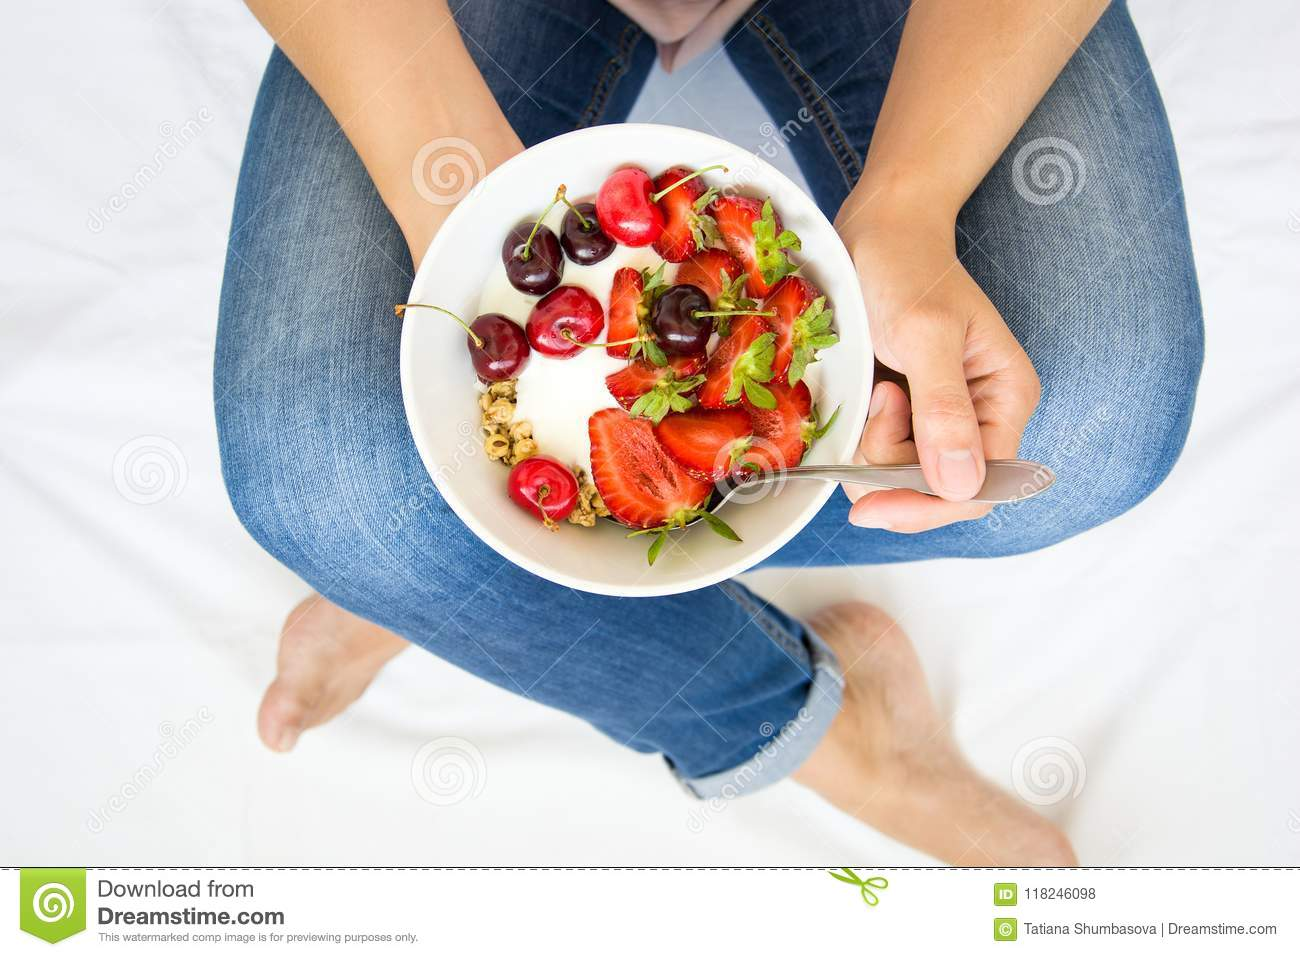 Healthy eating concept. Women`s hands holding bowl with muesli, yogurt, strawberry and cherry. Top view. Lifestyle